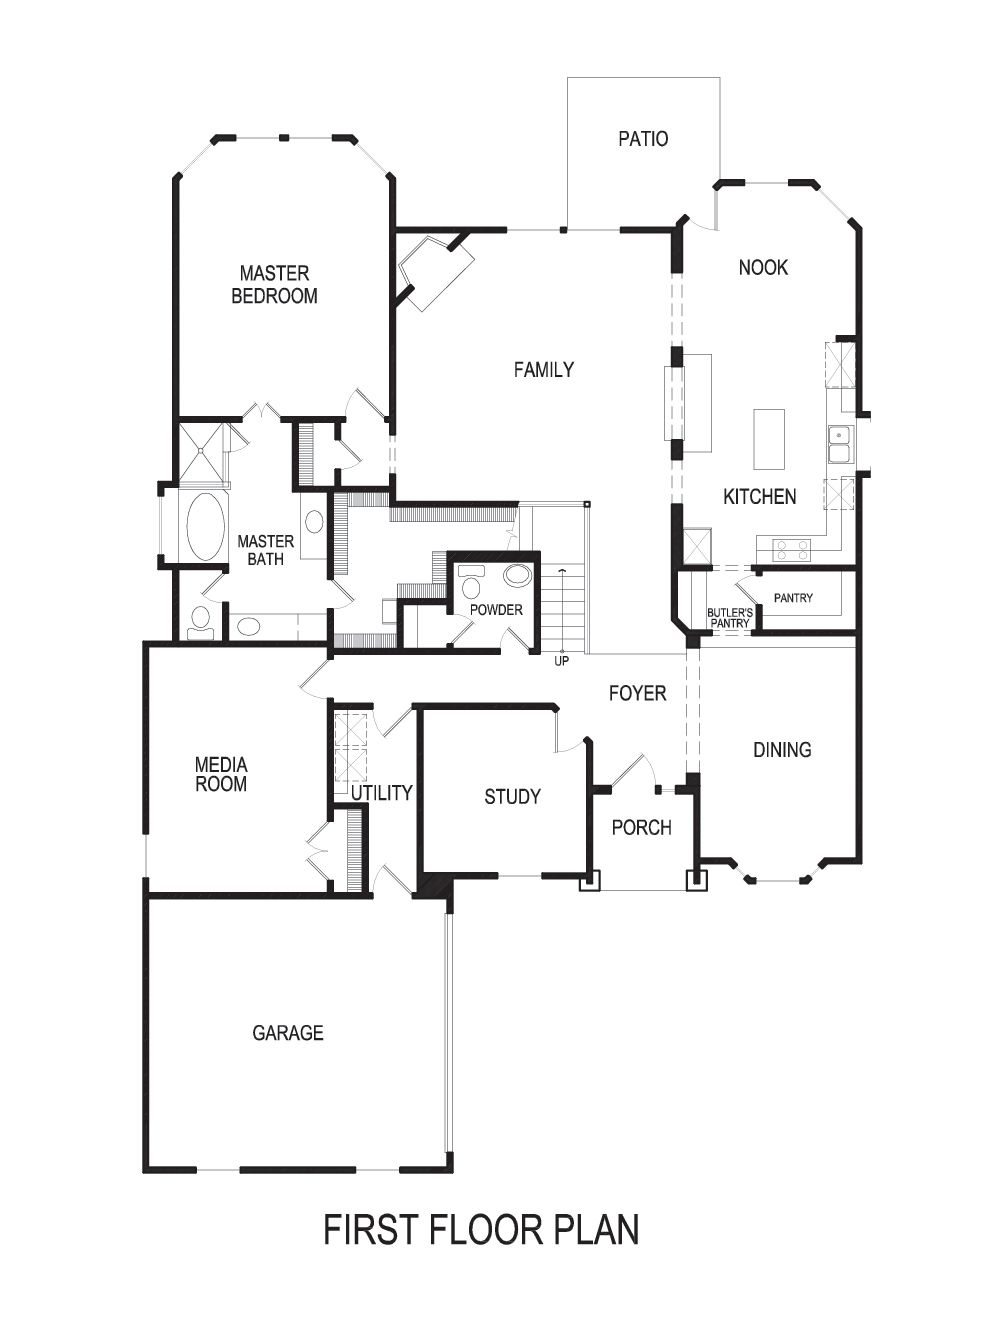 Birchwood FSW (w/Media) Home Plan by First Texas Homes in ... on finley house plan, taylor house plan, maple house plan, beach house plan, lancaster house plan, verona house plan, madison house plan, kensington house plan, edgewater house plan, cambridge house plan,